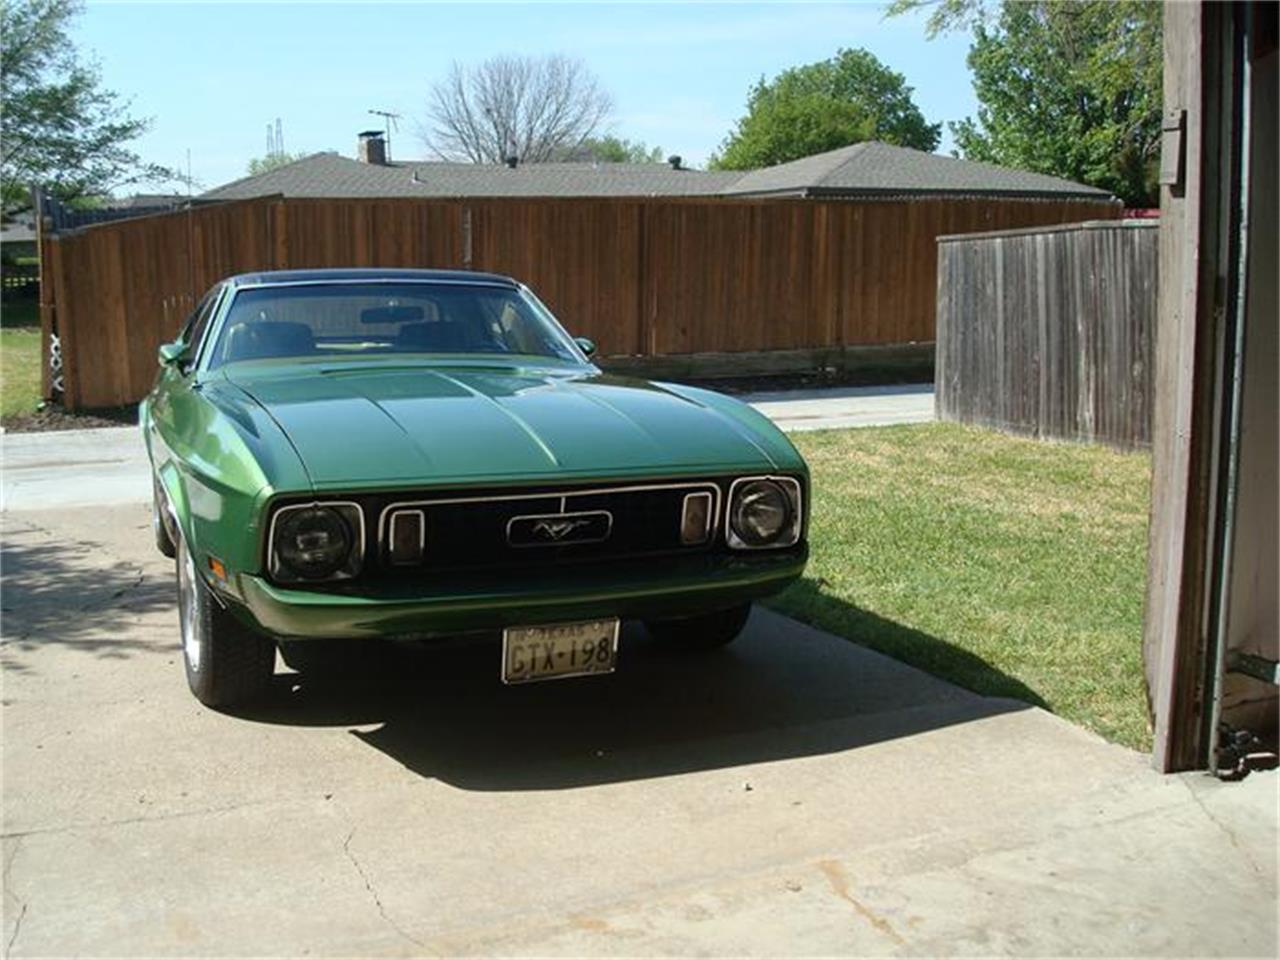 Large Picture of 1973 Ford Mustang - $10,500.00 - 4A3A